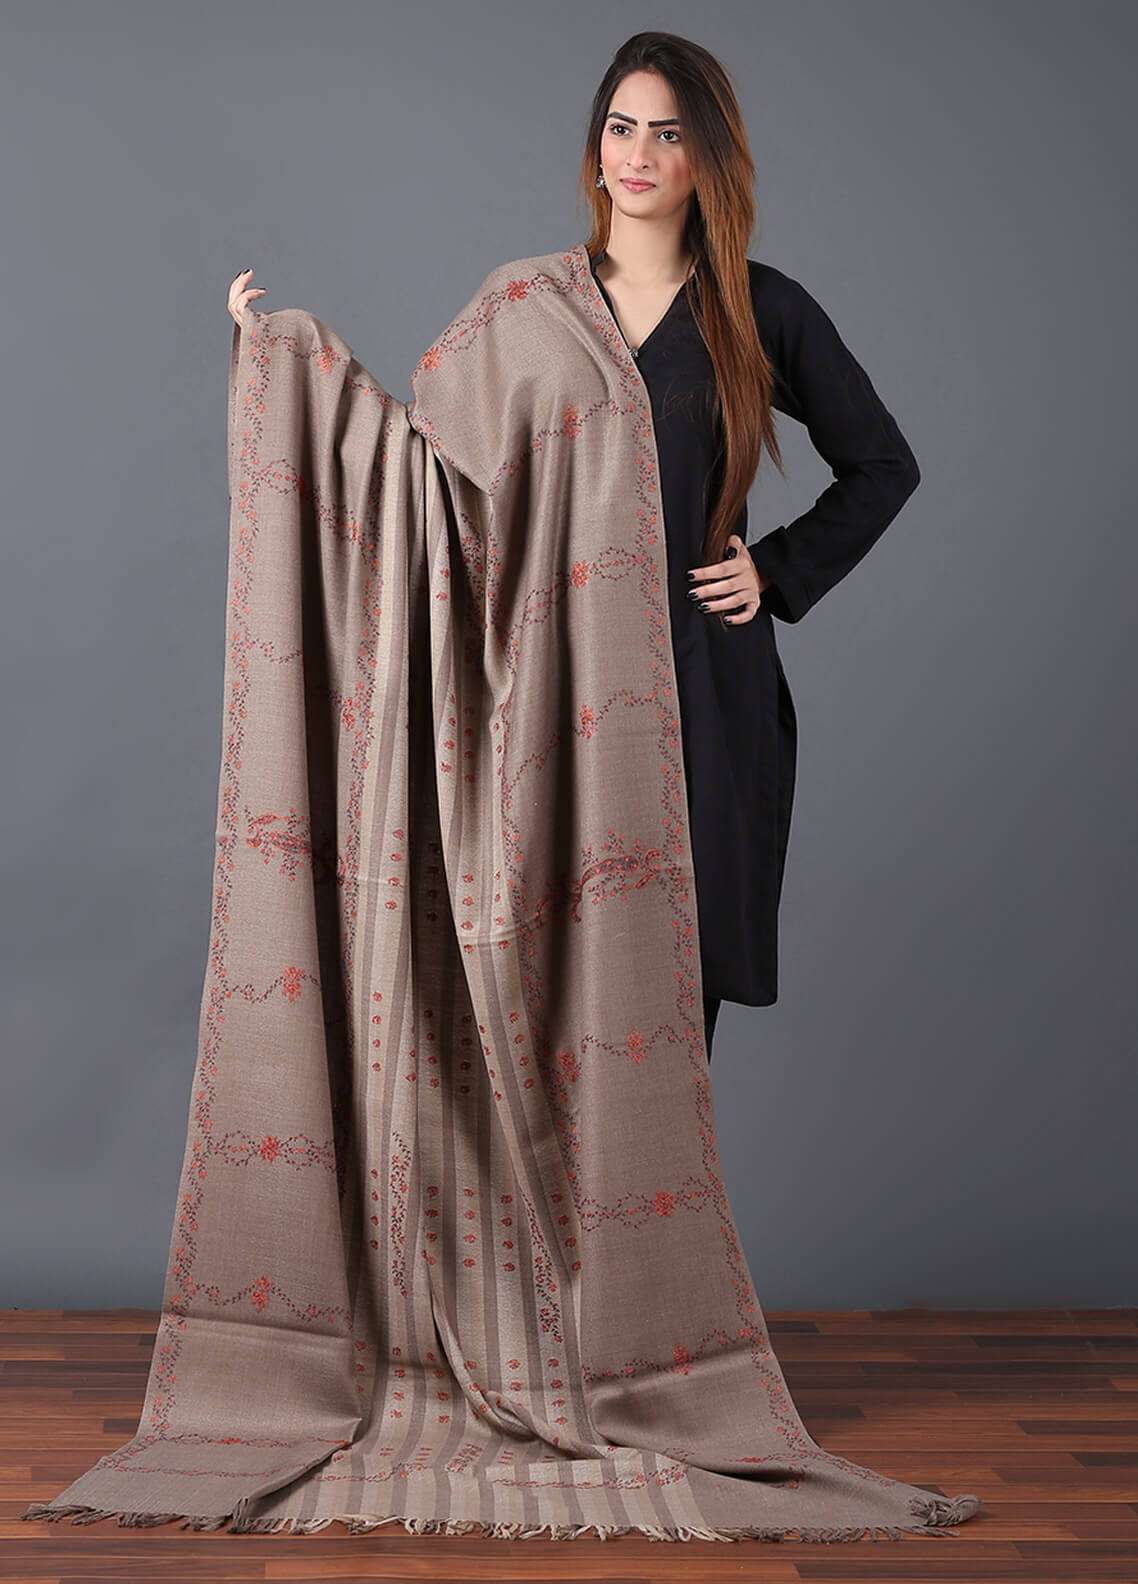 Sanaulla Exclusive Range Pashmina Embroidered Shawl 633 - Kashmiri Shawls